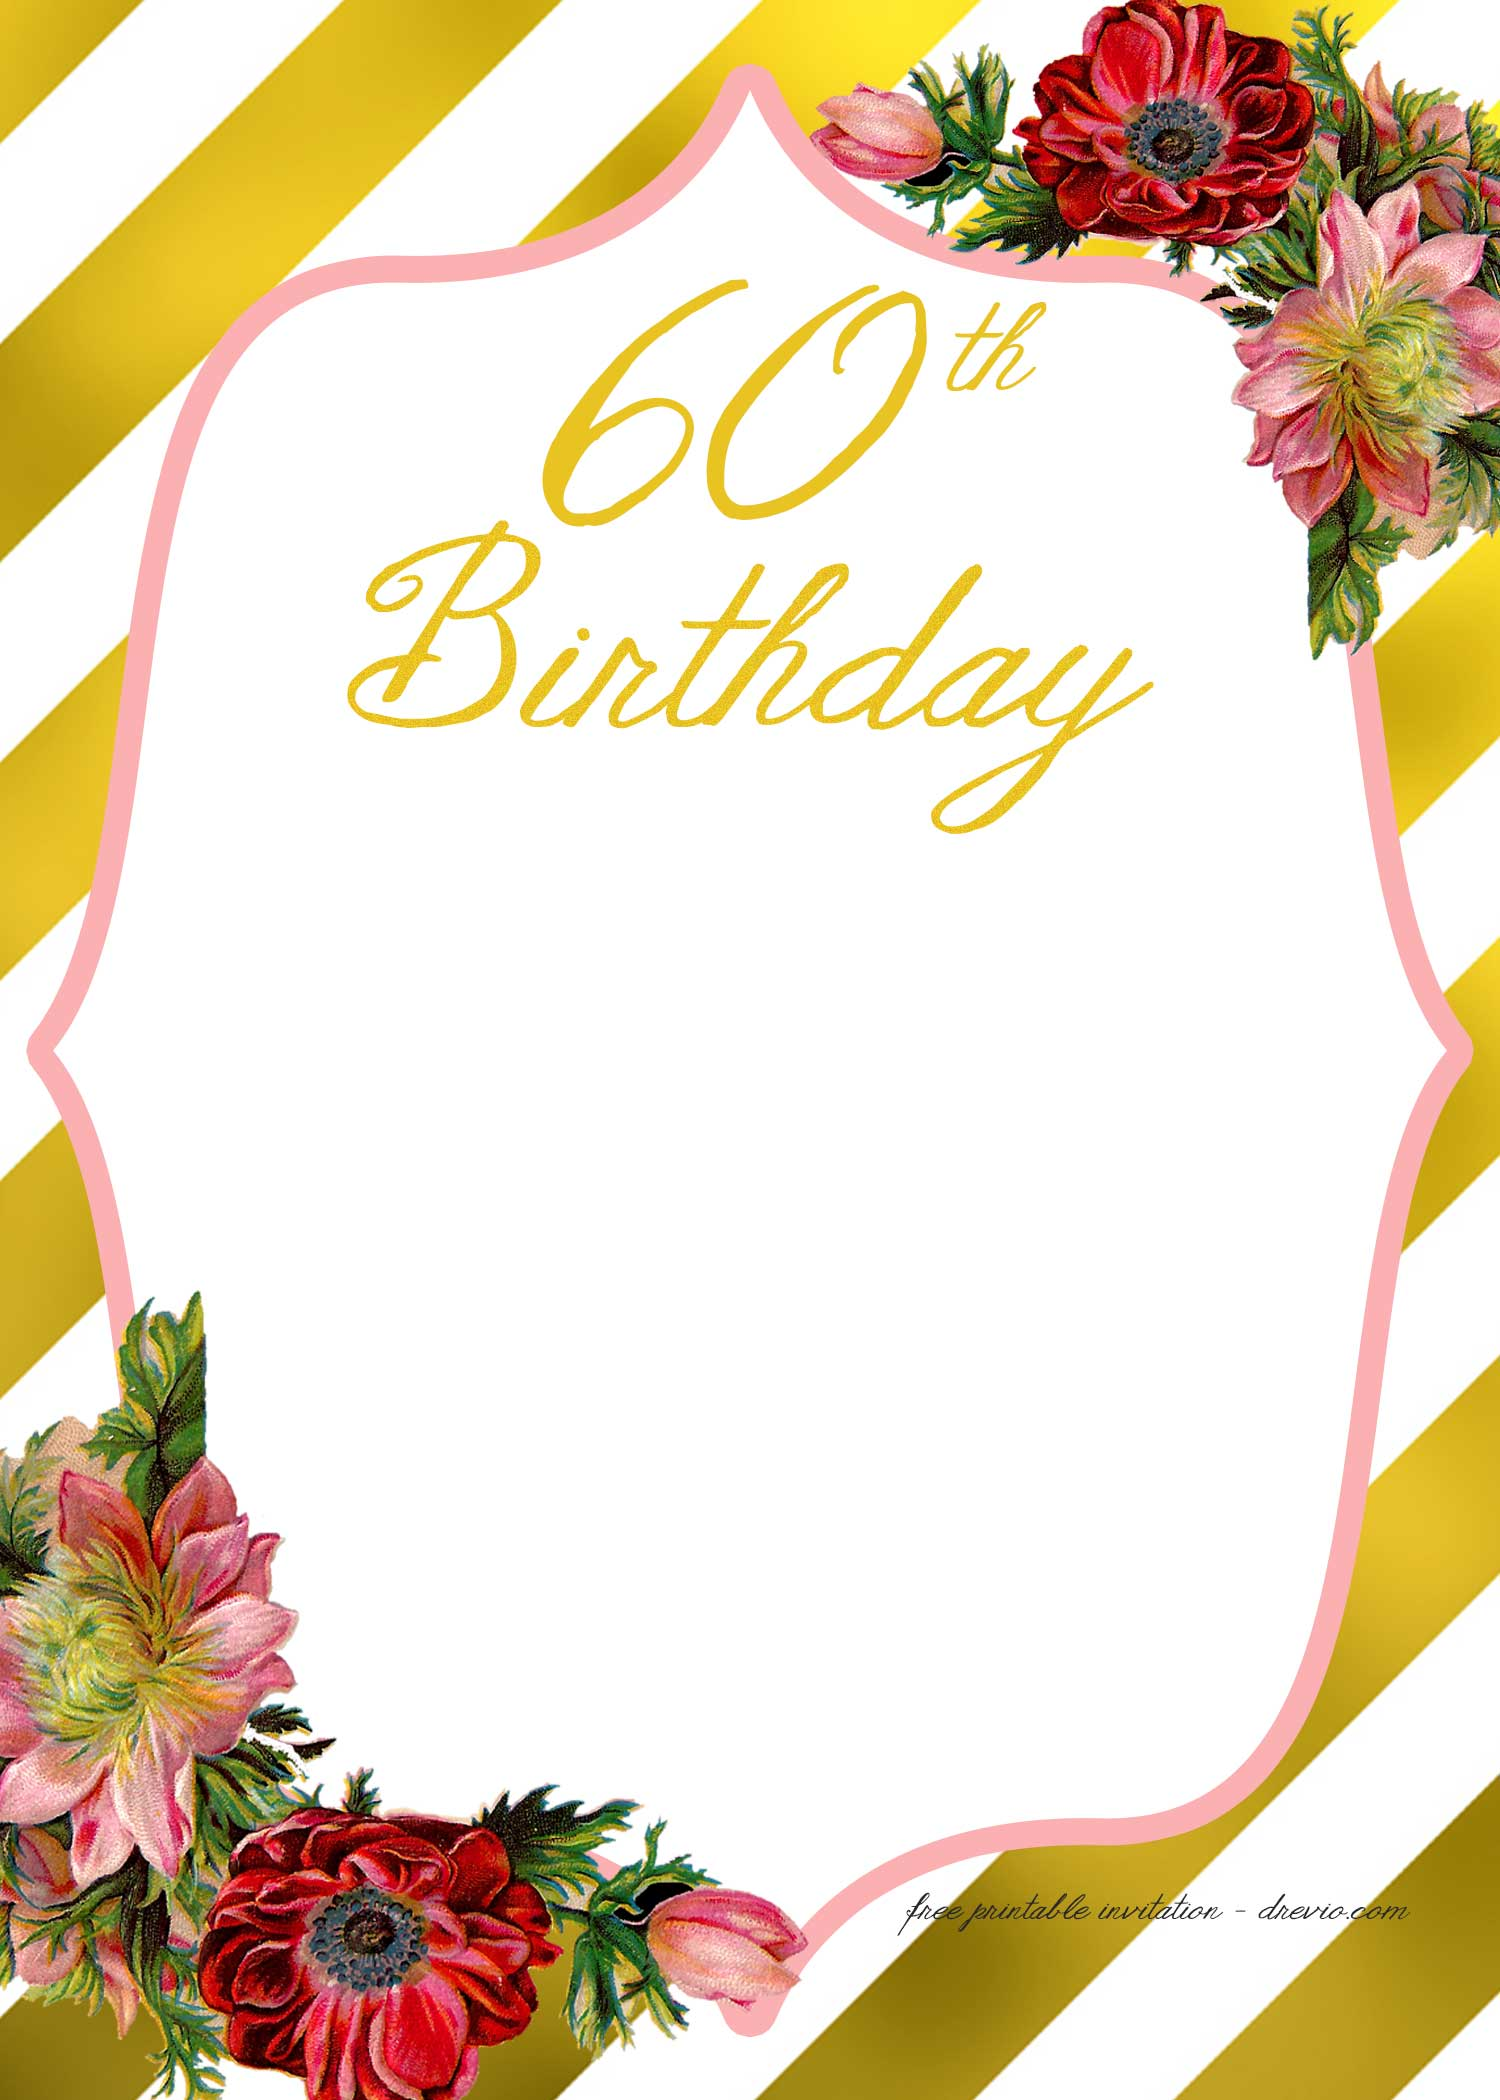 Adult Birthday Invitations Template – for 50th years old and up ...